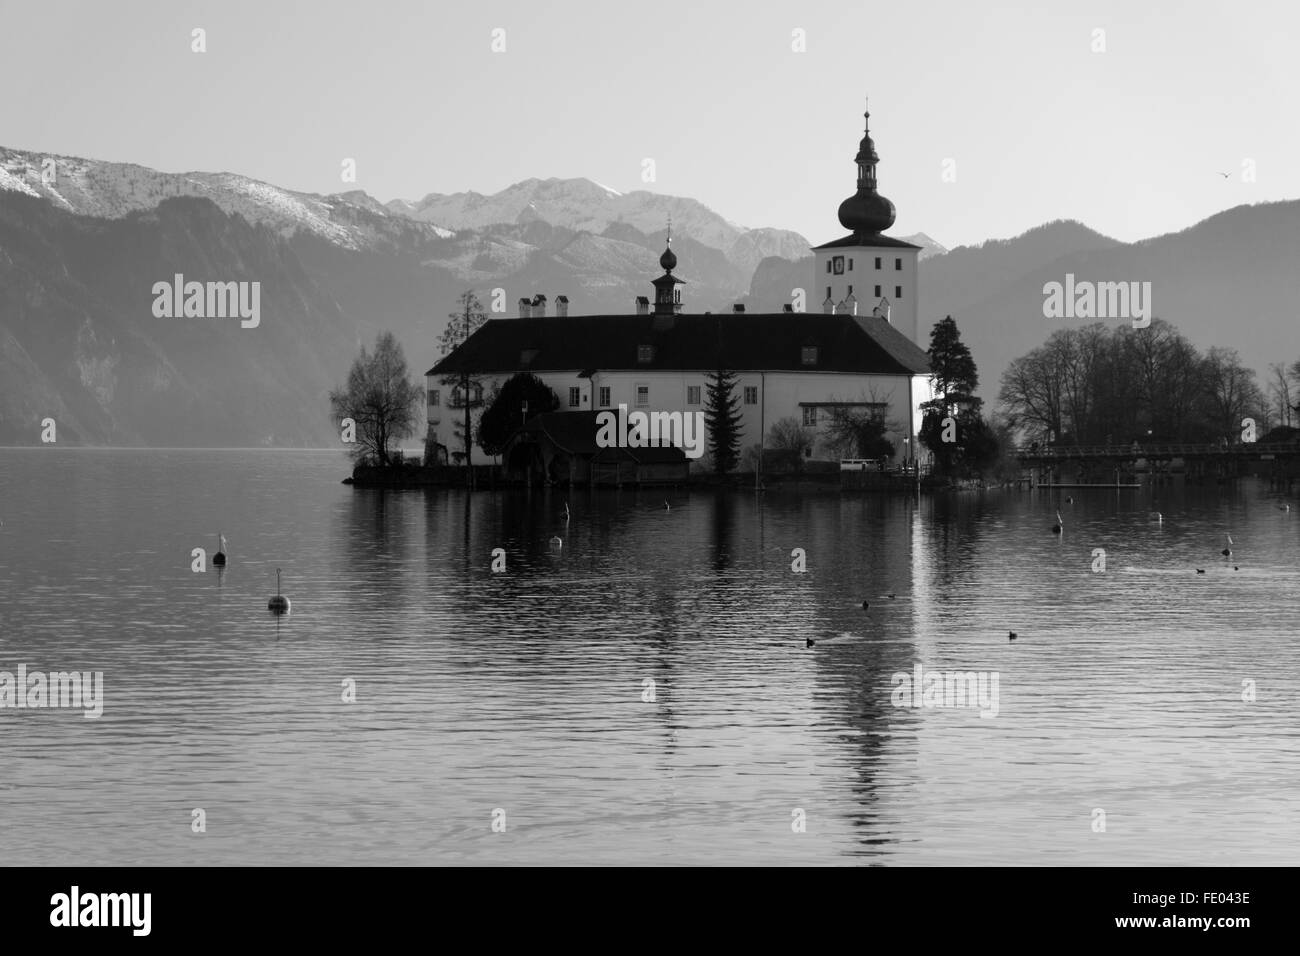 A black and white image of Schloss Ort in Gmunden, Austria, with snow covered mountains in the background - Stock Image